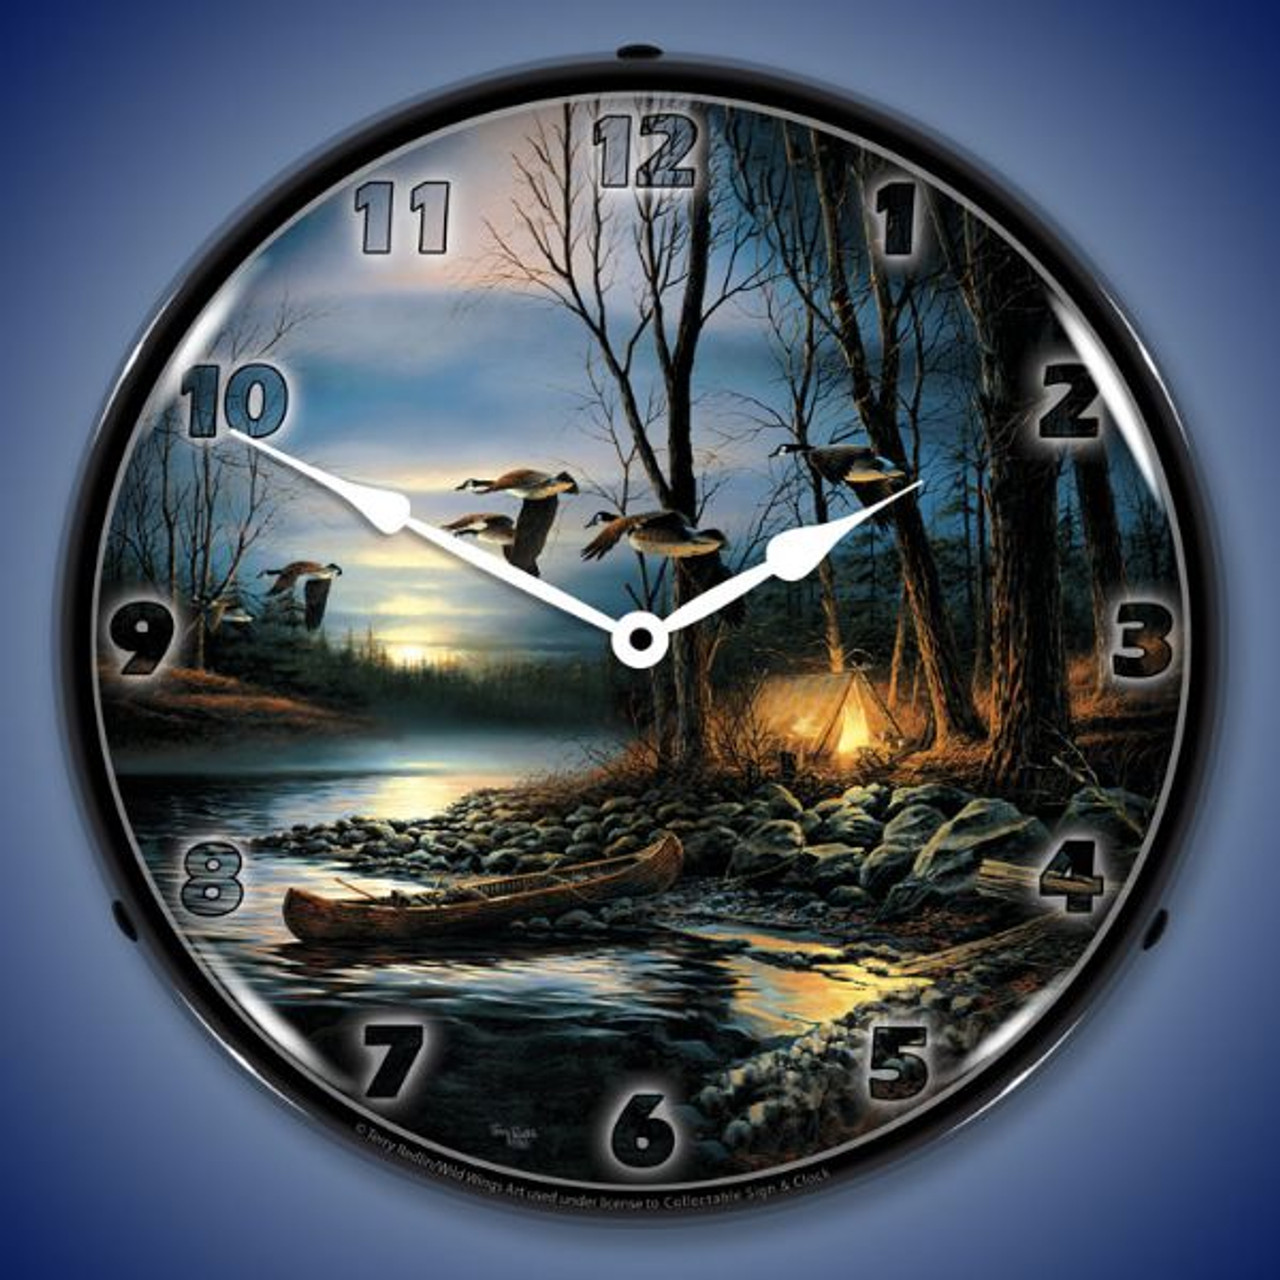 Evening Glow Lighted Wall Clock 14 x 14 Inches